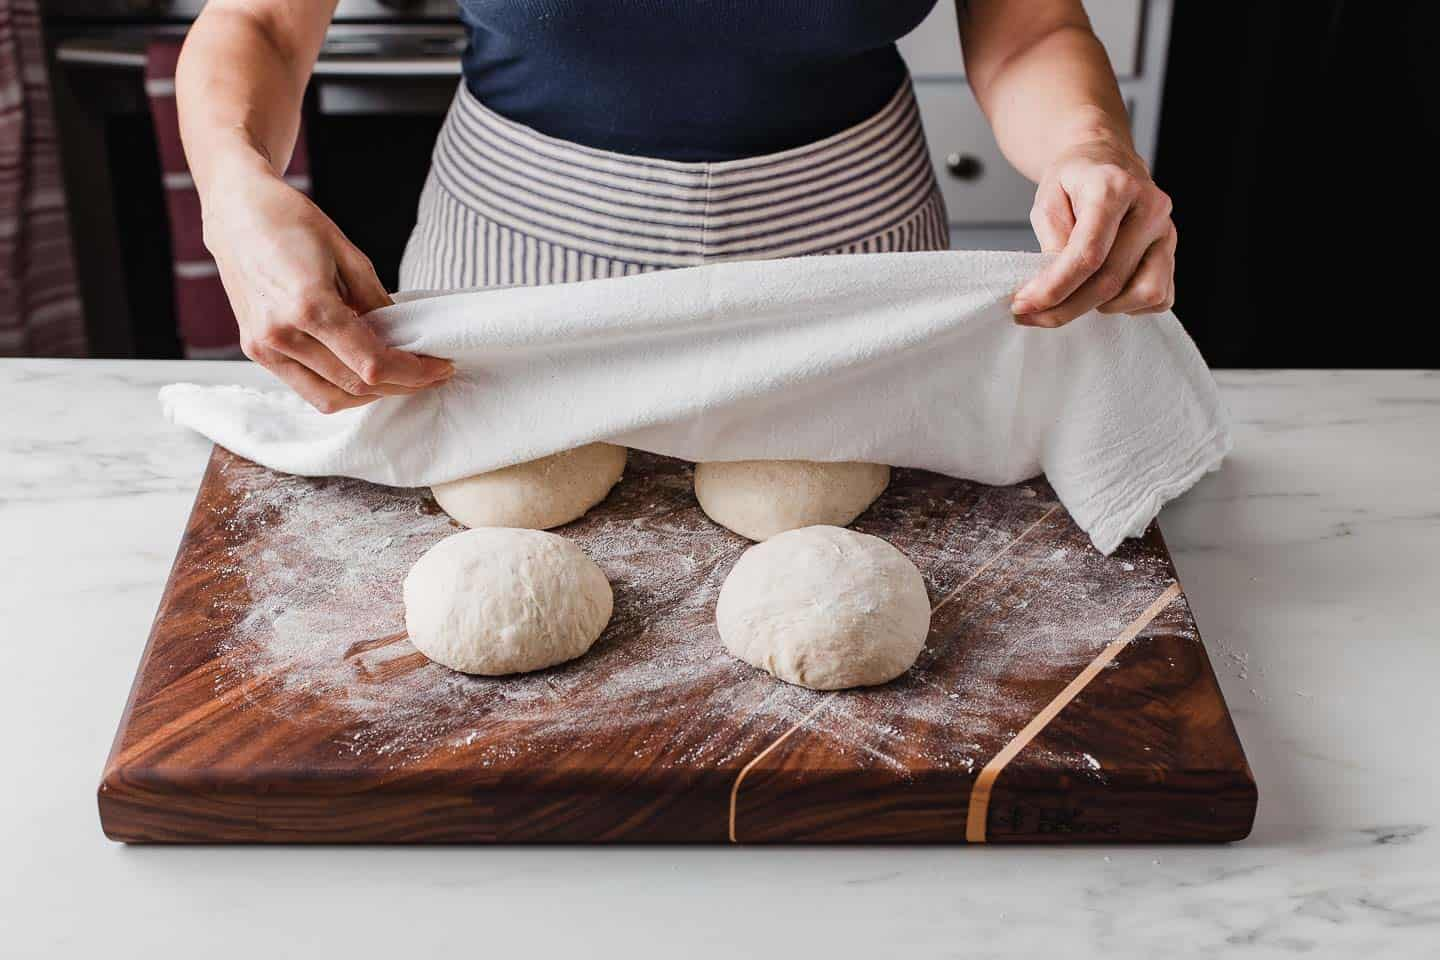 A woman covering sourdough pizza dough with a flour towel.